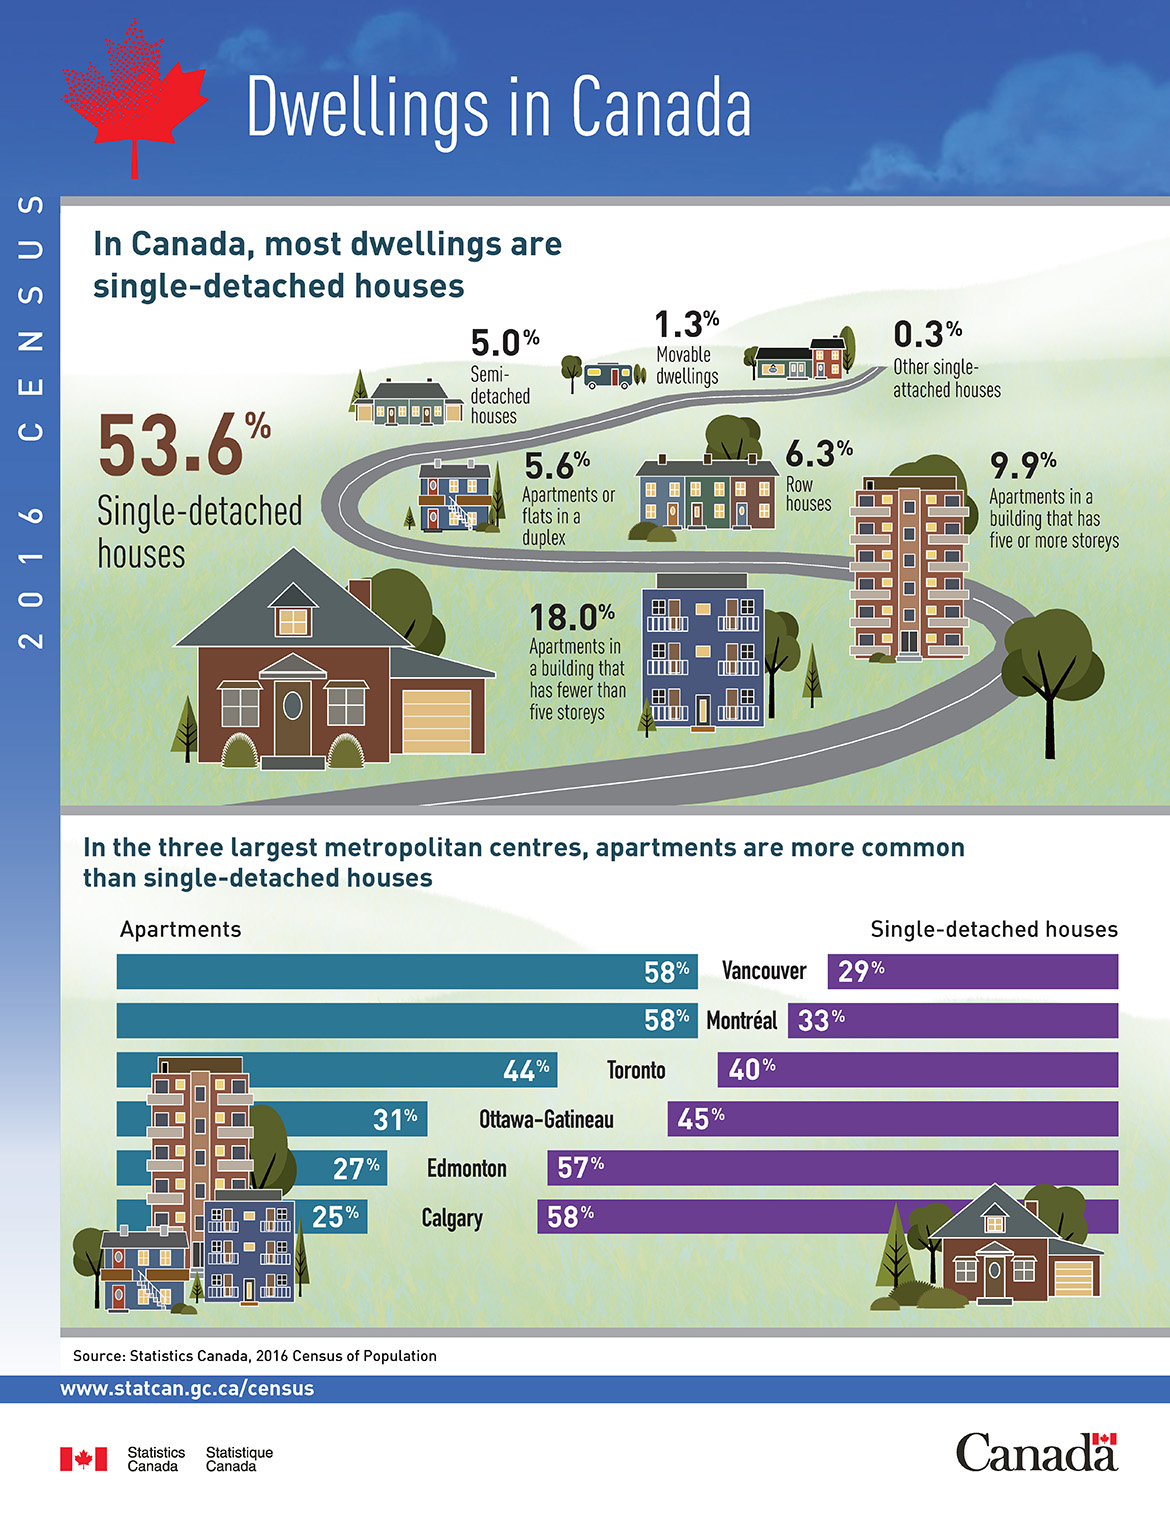 Infographic: Dwellings in Canada, 2016 Census of Population